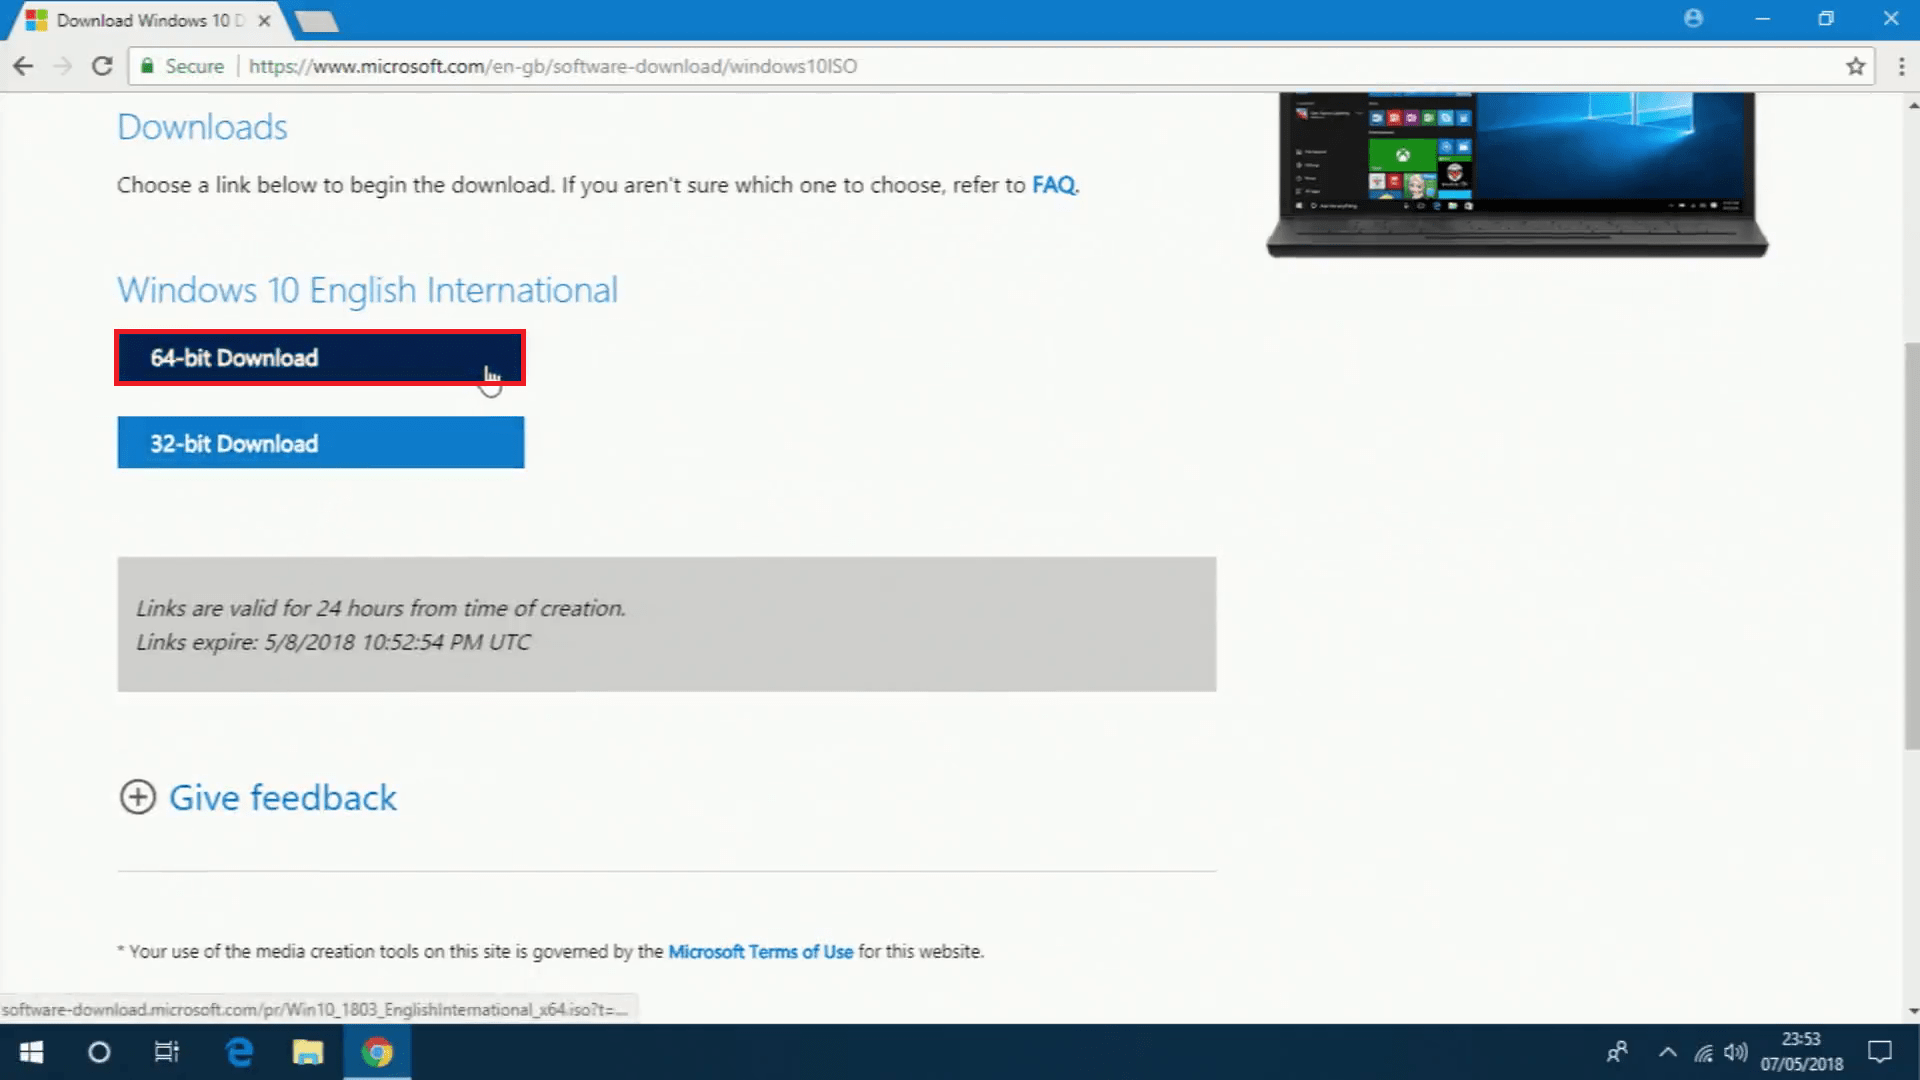 win 10 iso download link